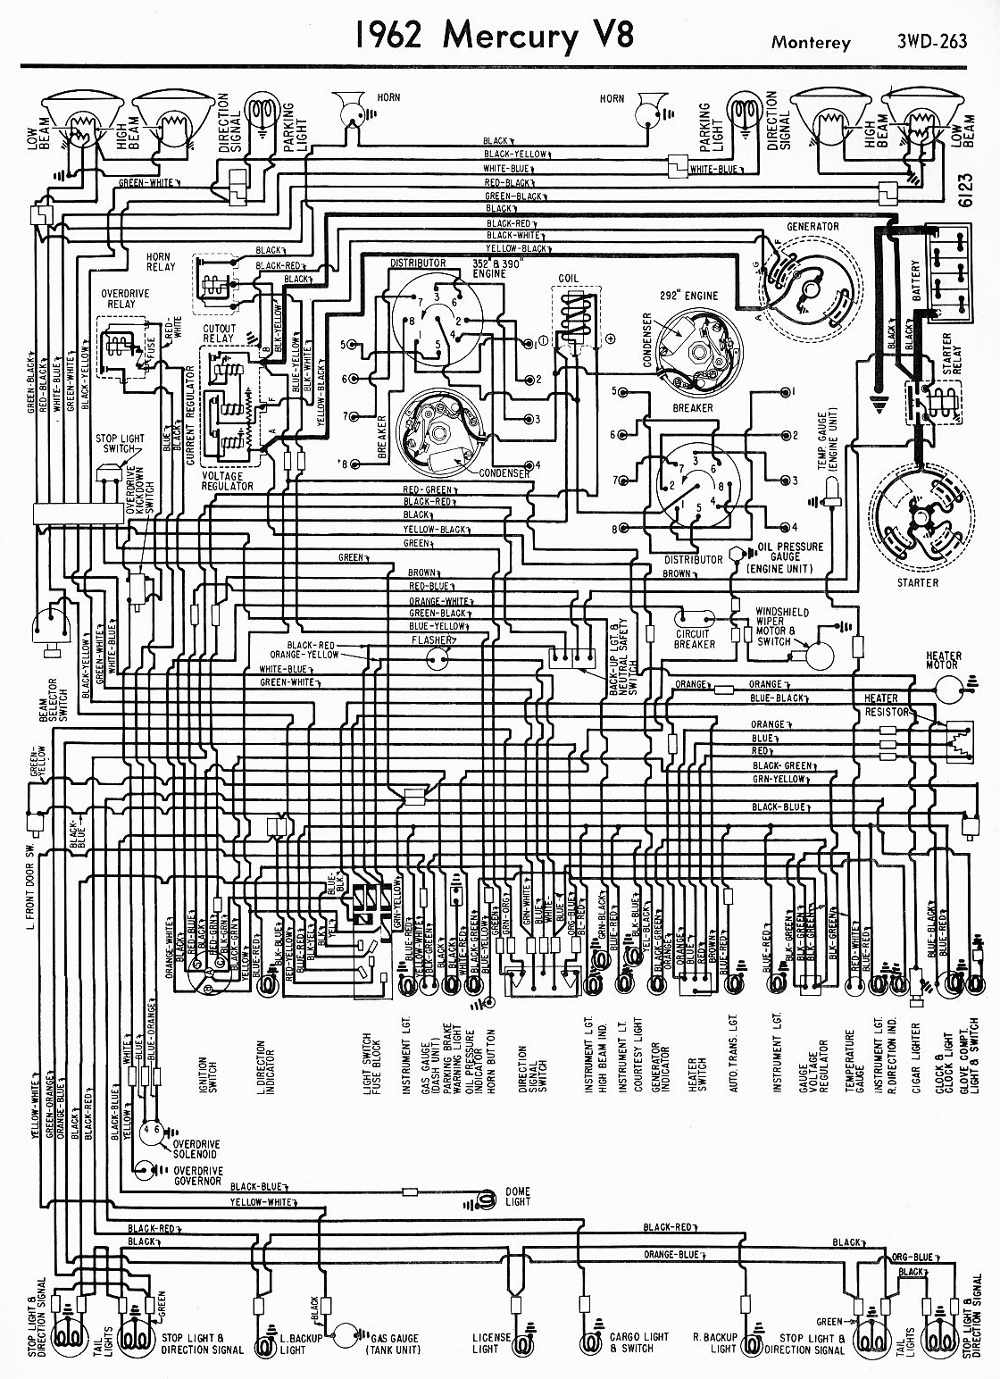 Wiring Diagrams Of 1962 Mercury V8 Monterey Wire Data Schema 1969 Ford Mustang Diagram Private Sharing About Car Manuals Pdf Fault Codes Rh Automotive Net 50 Hp Outboard